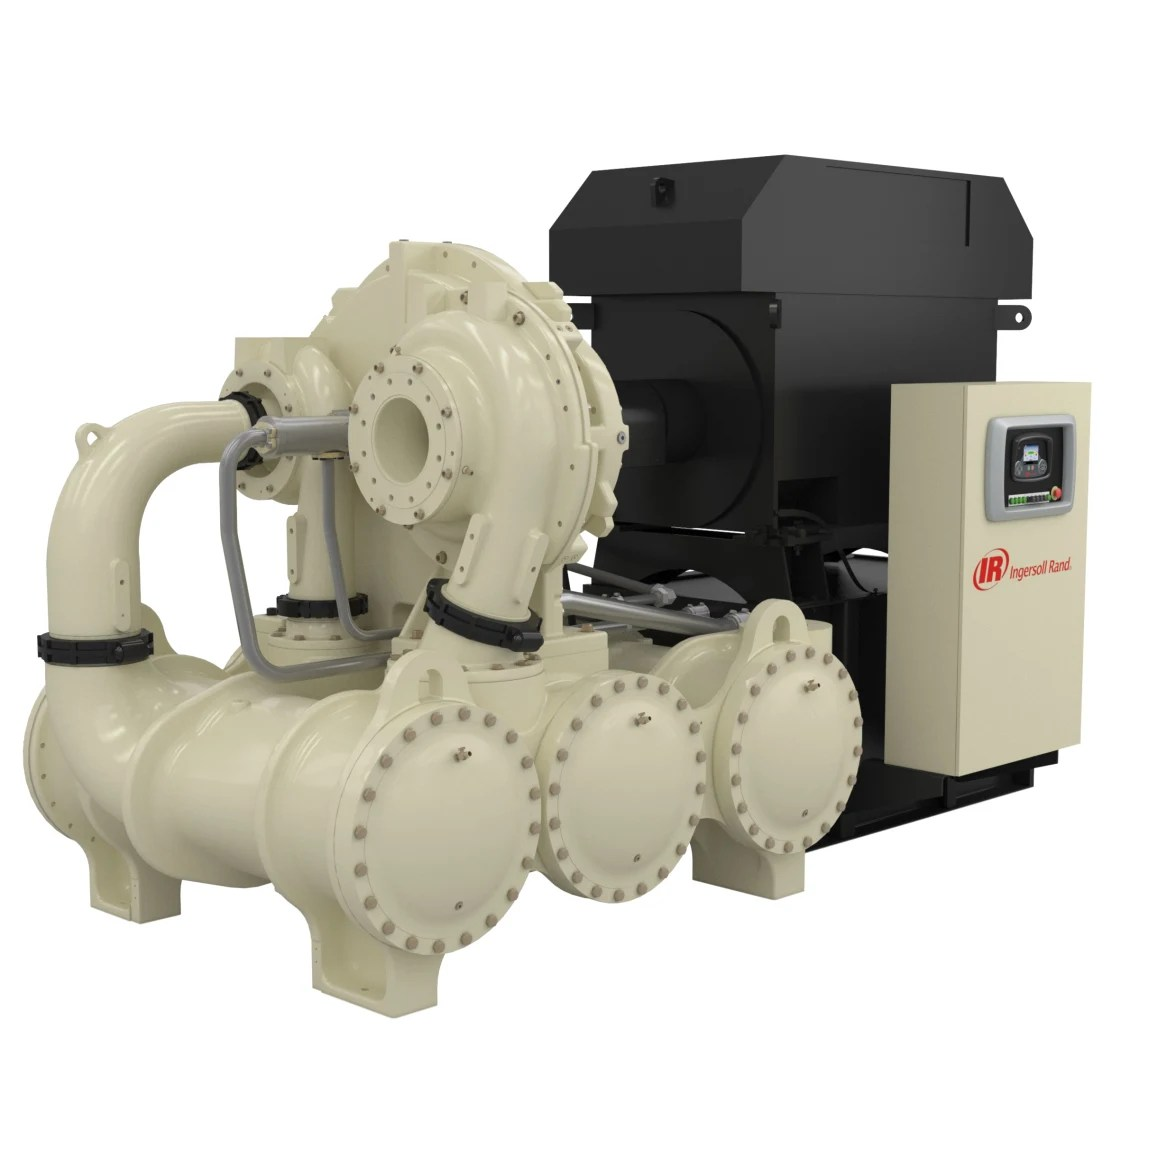 hight resolution of centrifugal oil free compressors ingersoll rand